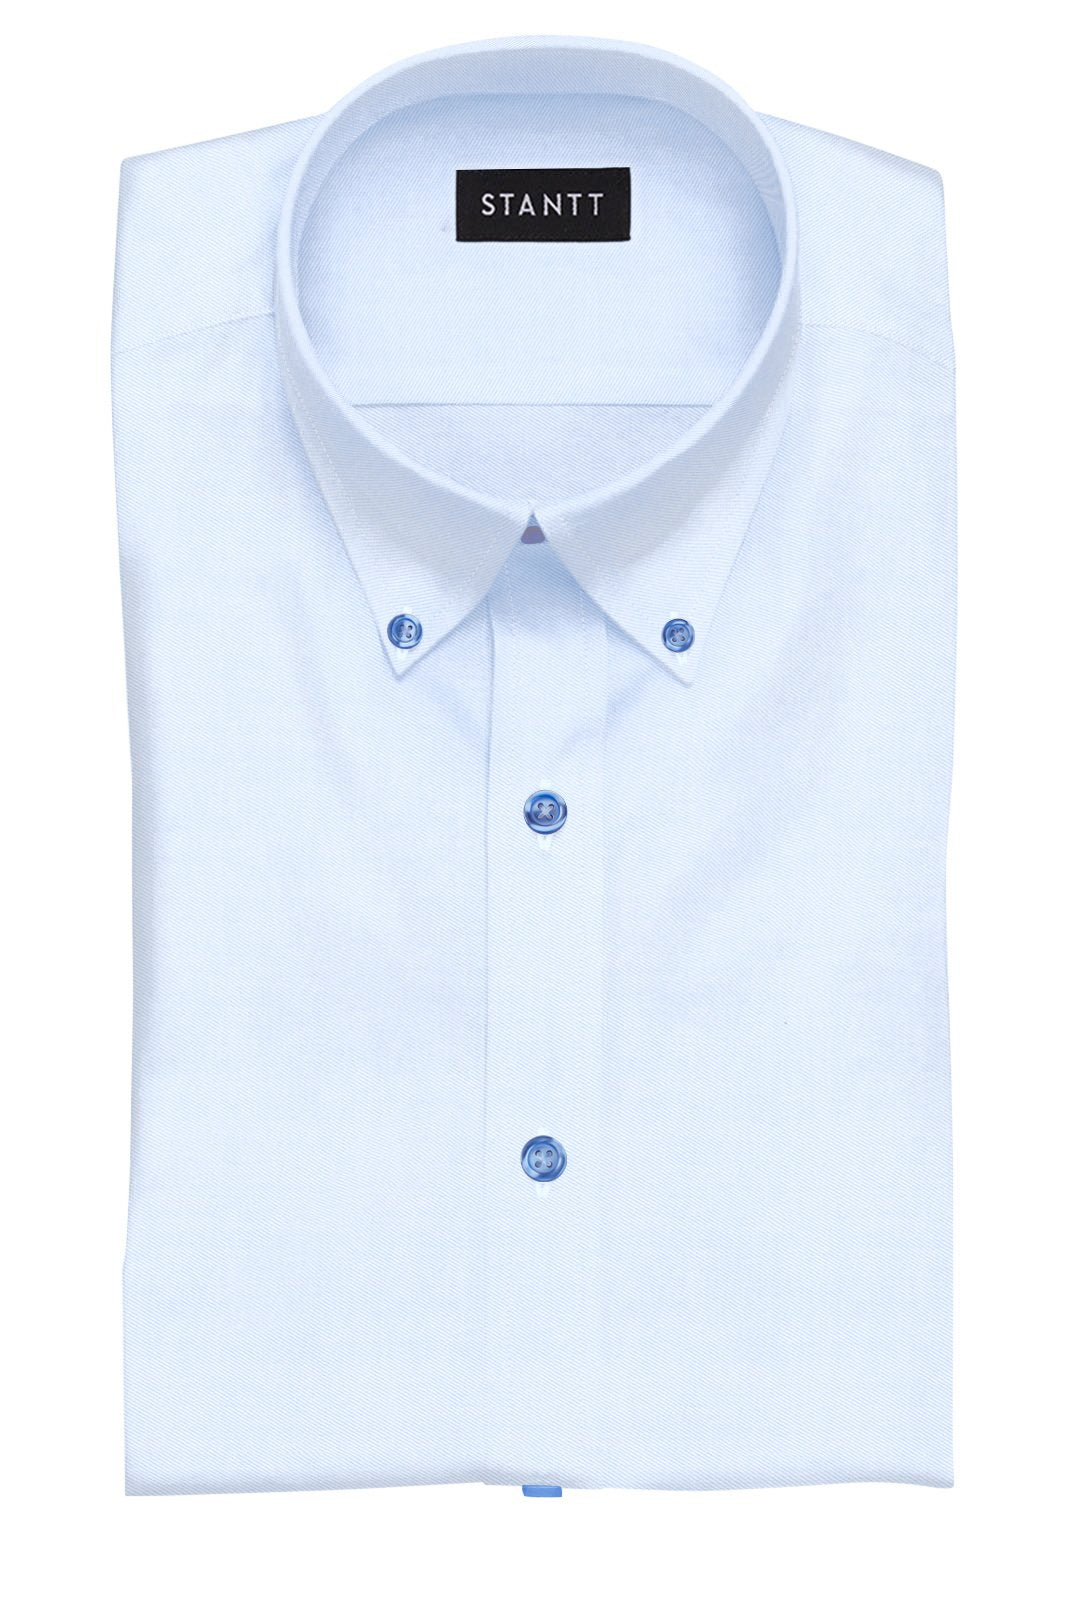 Navy Button on Wrinkle-Resistant Light Blue Twill: Button-Down Collar, Barrel Cuff